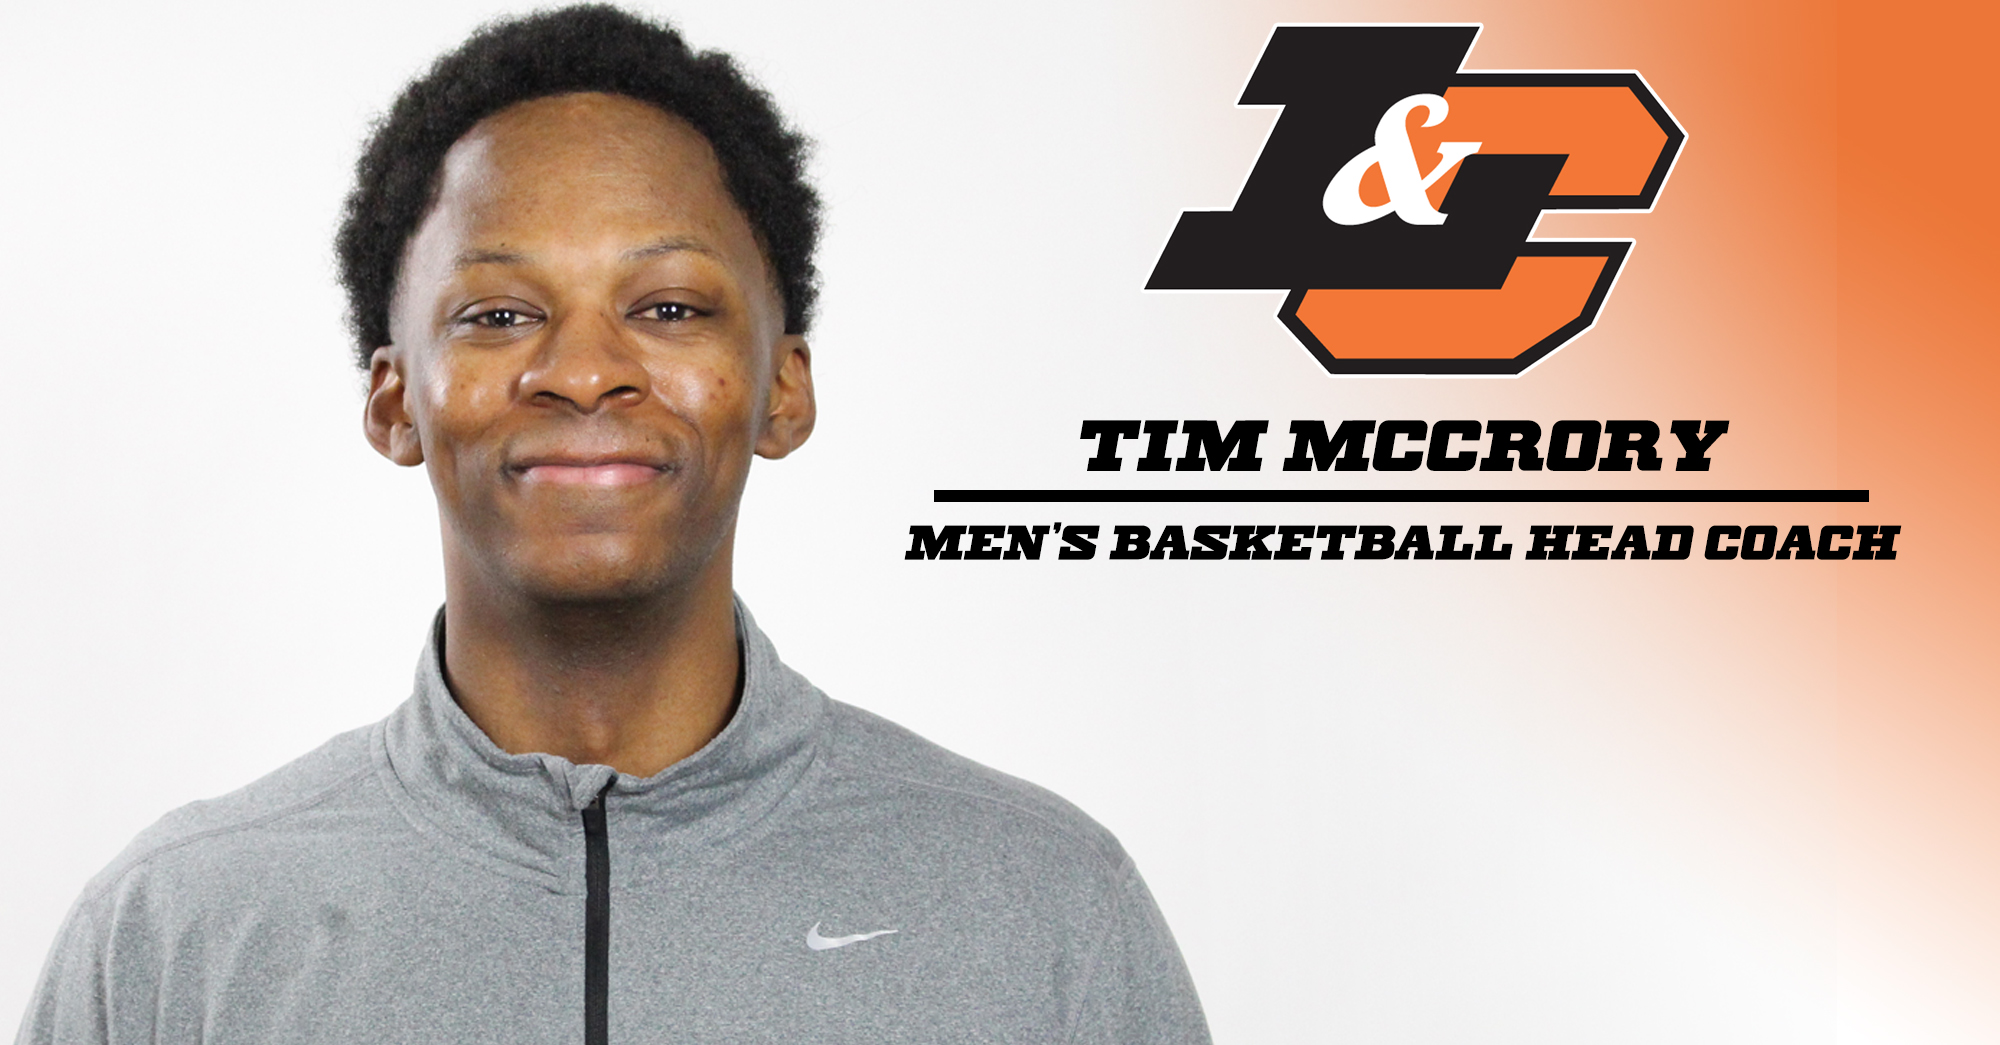 McCrory to lead men's basketball program